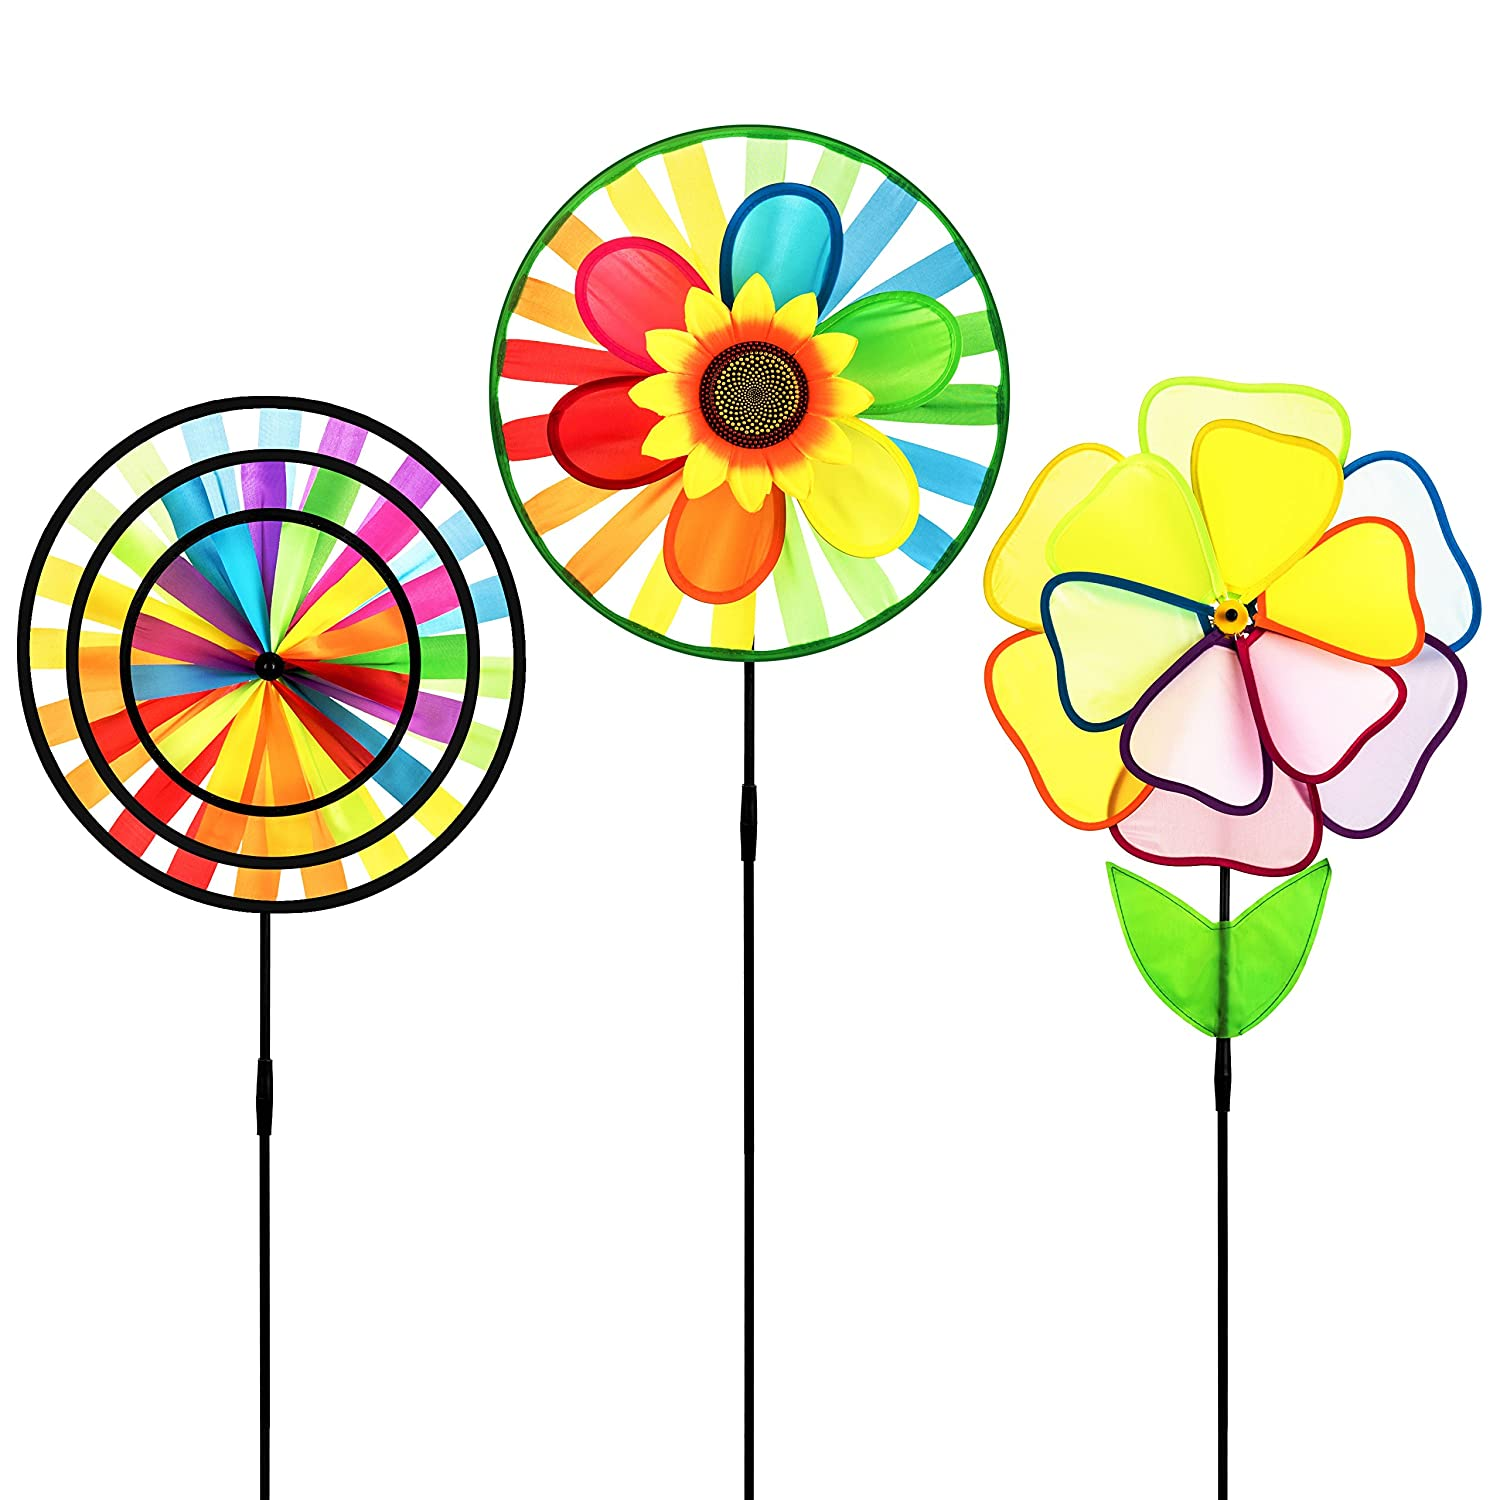 Pinwheel 3 Pack Made Stain of Durable 100% Weatherproof Nylon 3 of and Fibreglass UV Resistant Won't Stain Rainbow Coloured spinner for Gardens dance in the slightest of breezes. B0725MG4B7, ショップUQ:0482a2b0 --- artmozg.com